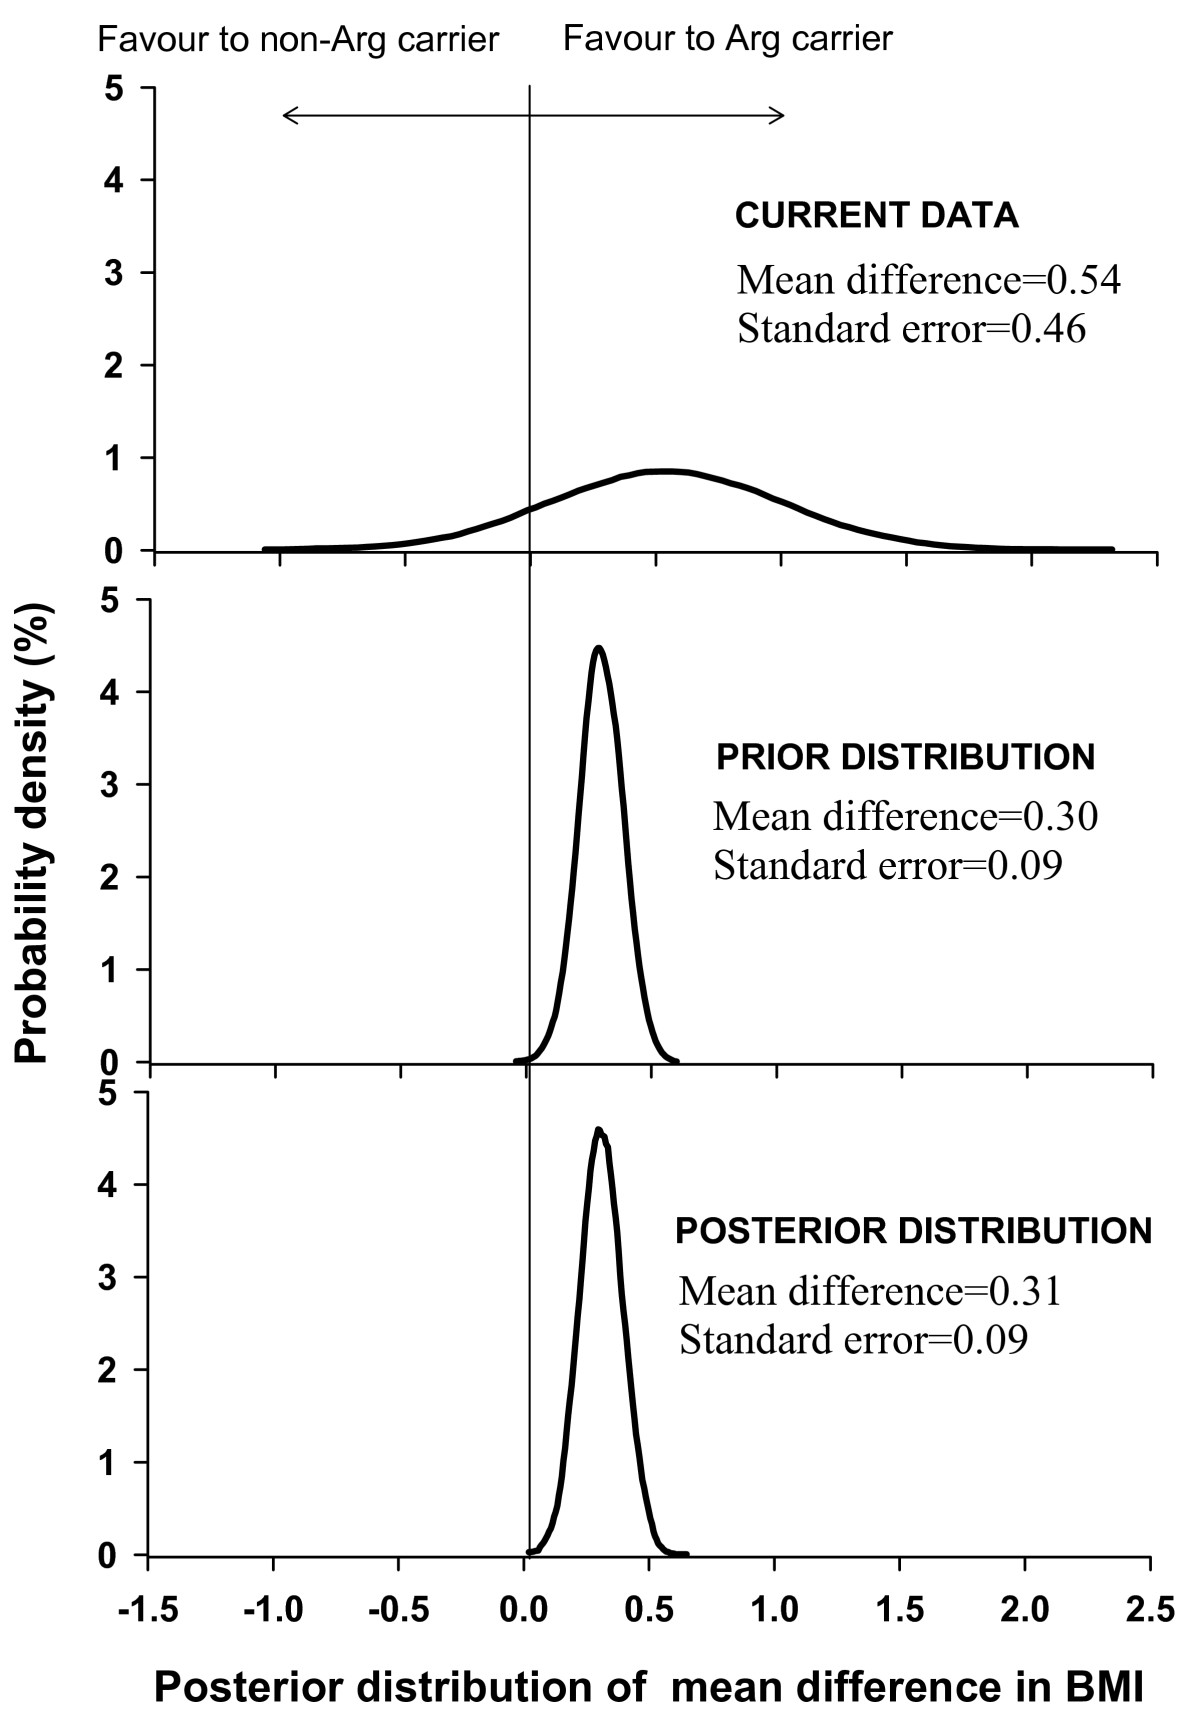 http://static-content.springer.com/image/art%3A10.1186%2F1471-2350-7-57/MediaObjects/12881_2006_Article_165_Fig1_HTML.jpg